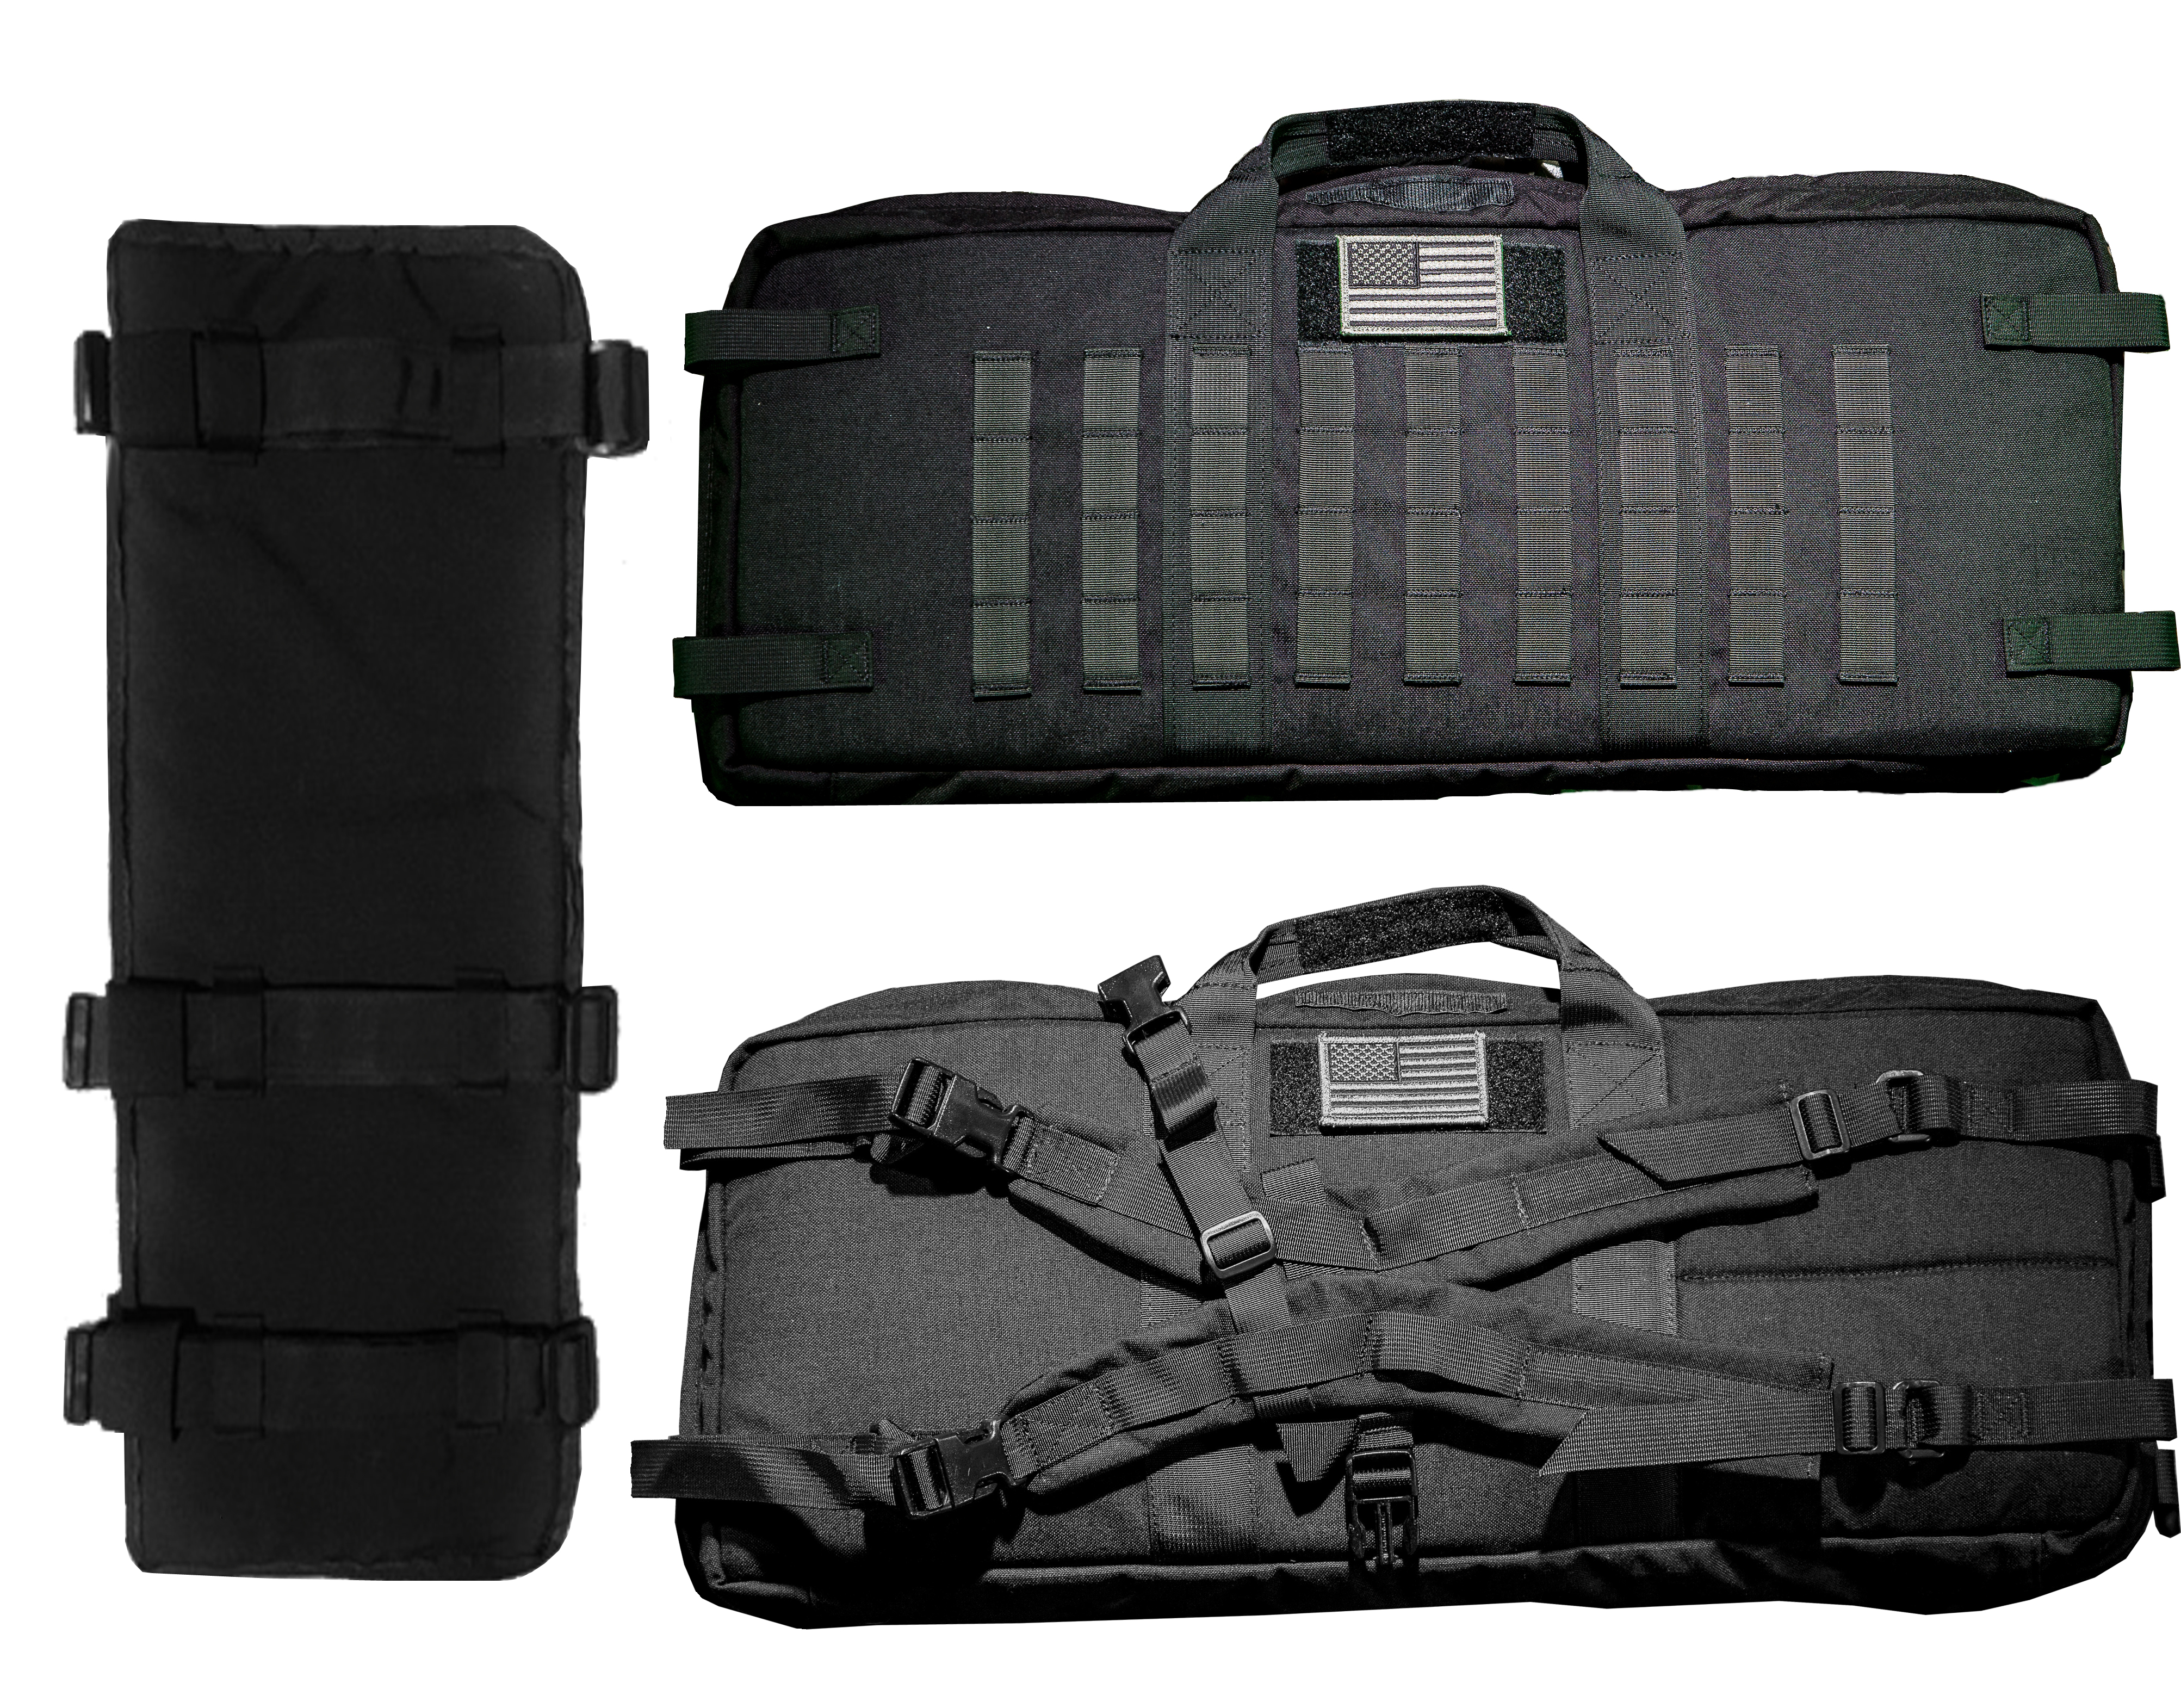 SERE Bag Front and Back SplintWBack.jpg